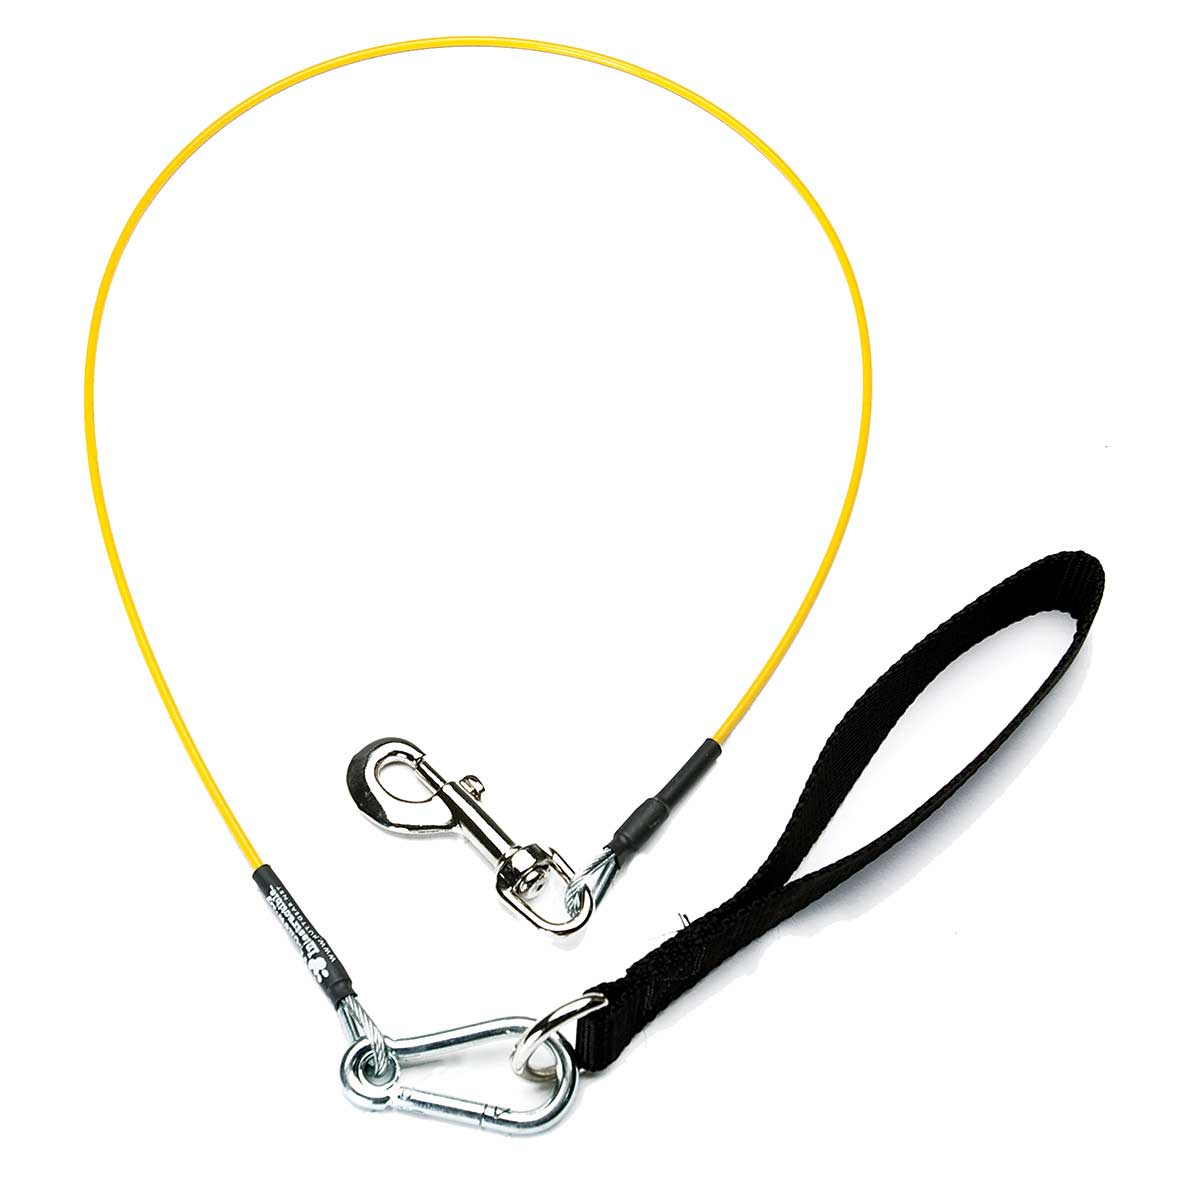 Yellow Indestructible Leash Medium 5 foot 6 inch For Dogs Up To 80 lbs